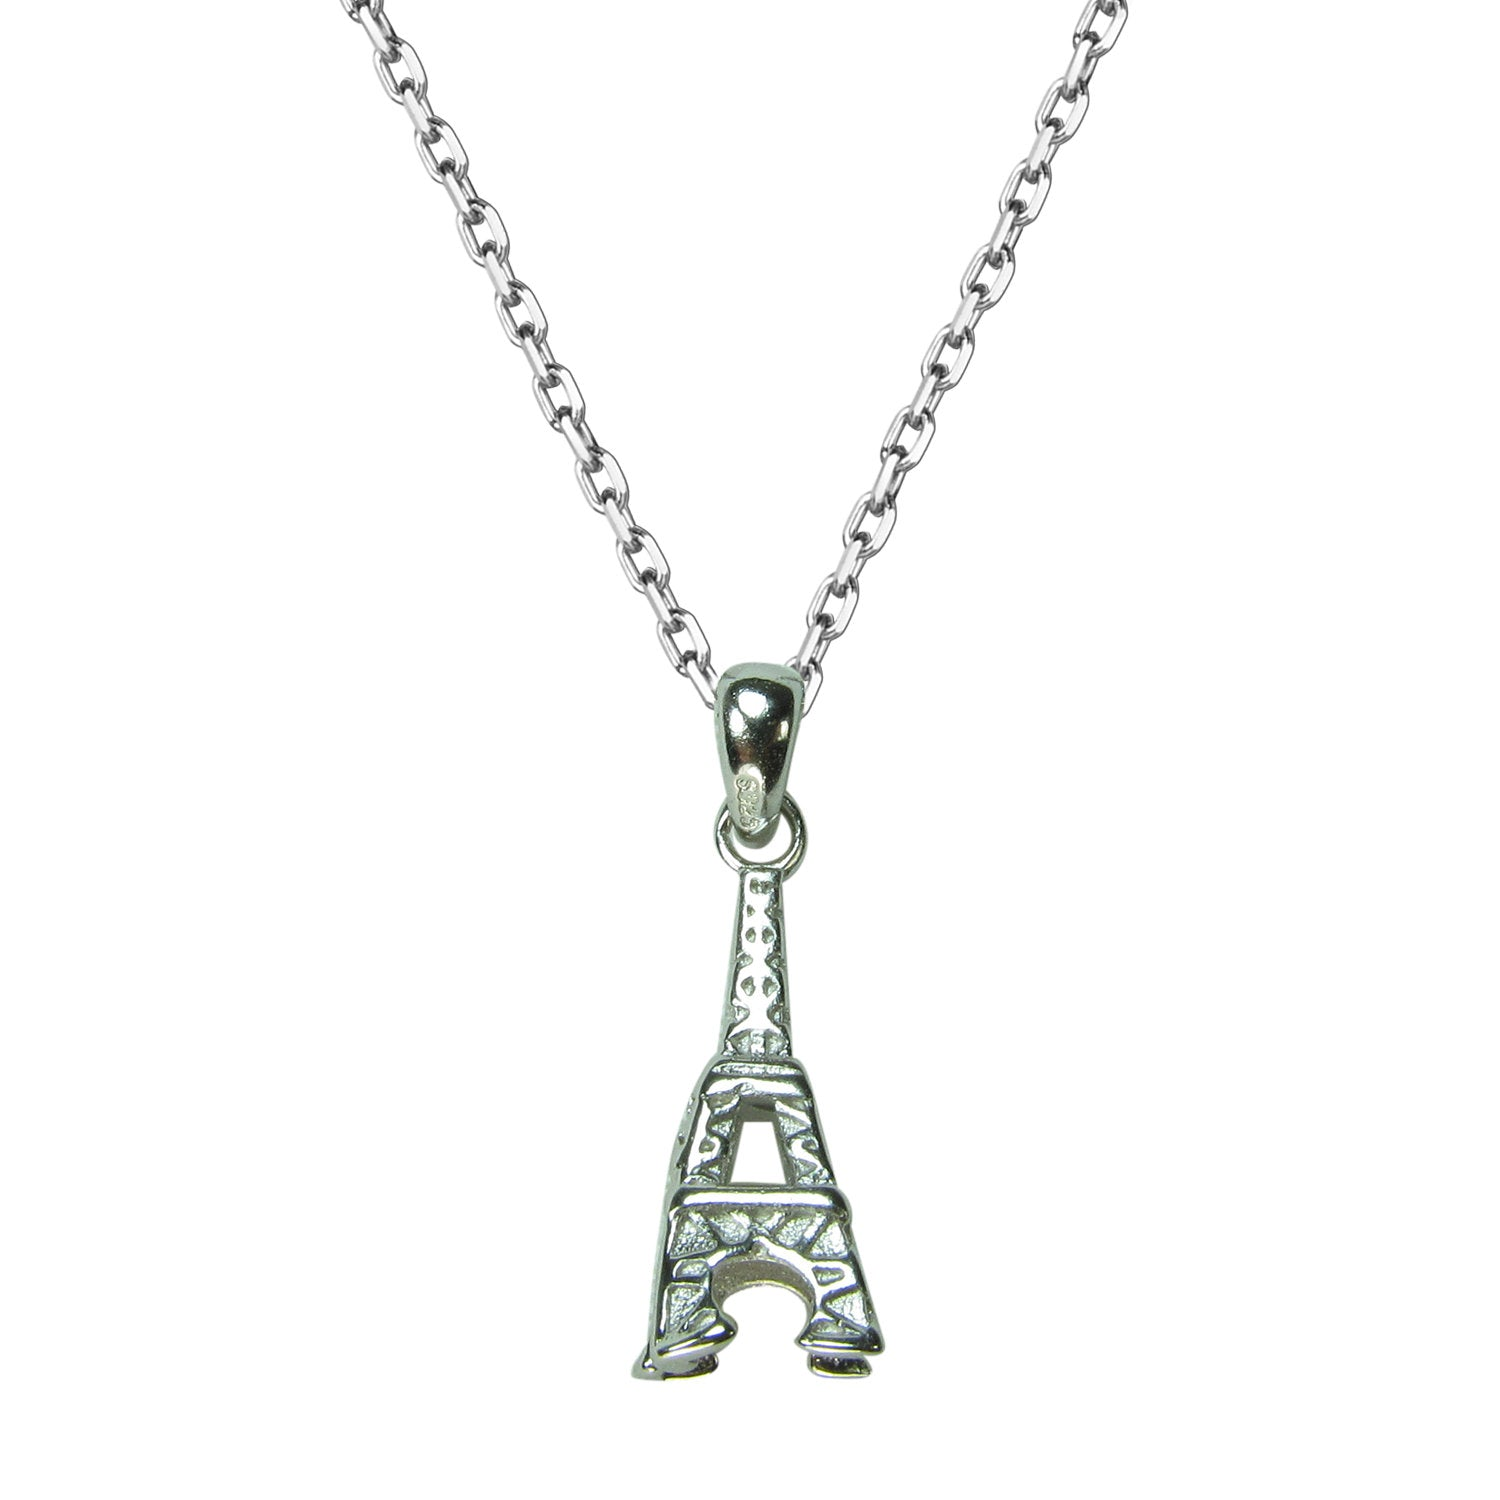 EIFFEL TOWER STERLING SILVER NECKLACE